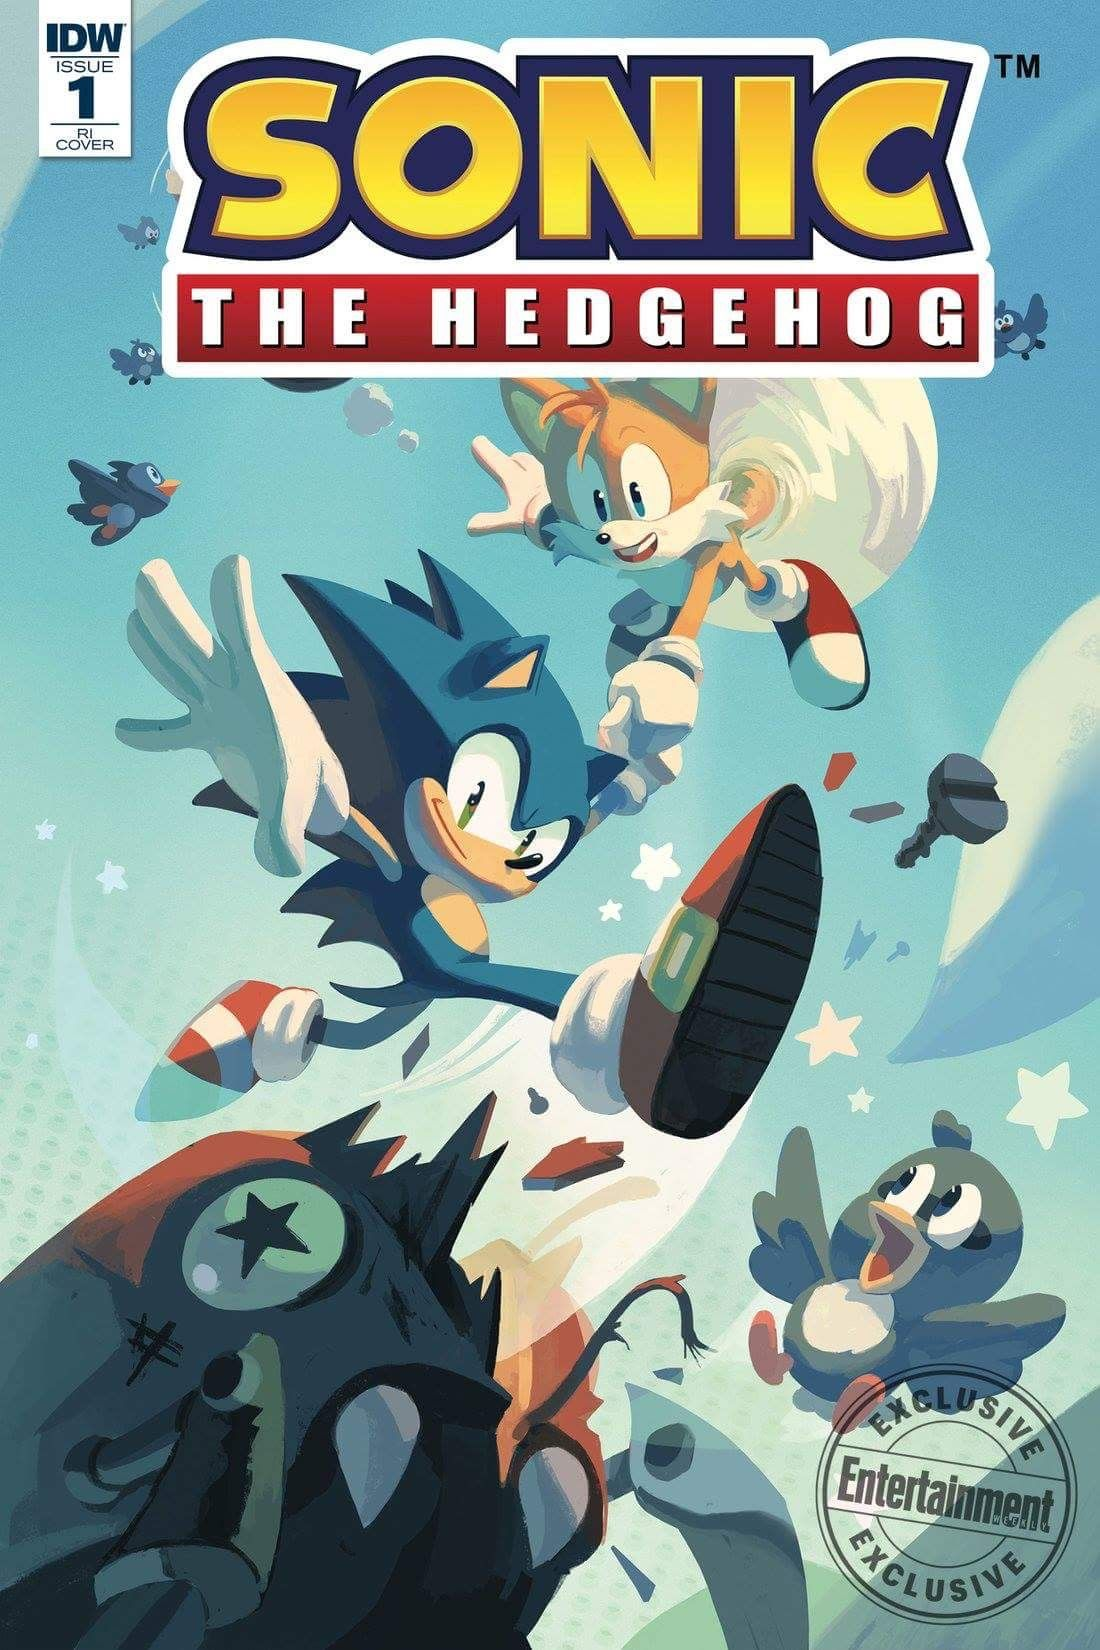 Here S A Brand New Bonus Cover For Idwsonic Issue 1 By Nathalie Fourdraine Sonicnews Sonic Sonic The Hedgehog Sonic Fan Art